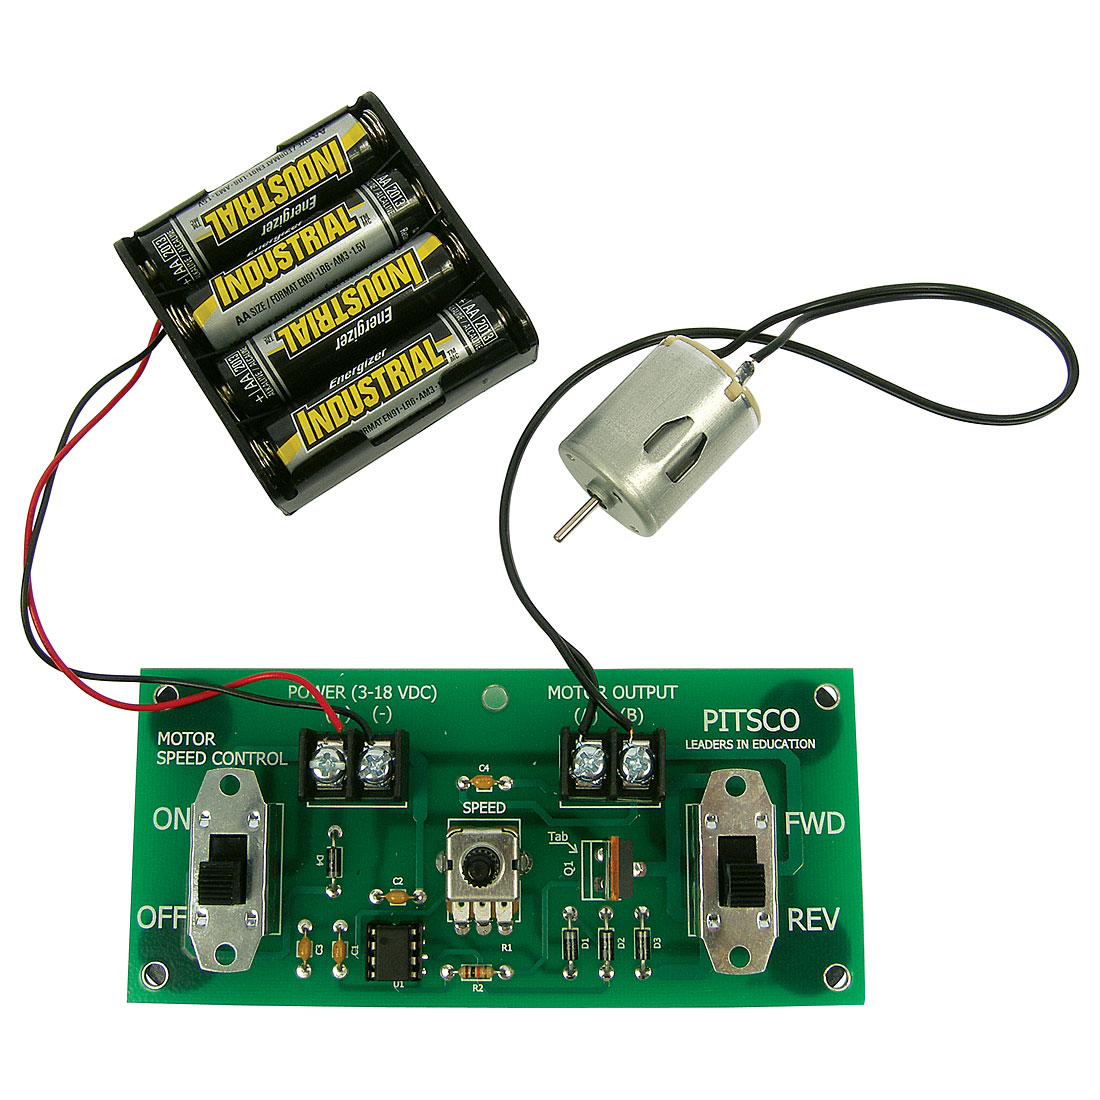 Purchase Pitsco Dc Motor Controller Forward And Reverse Circuit